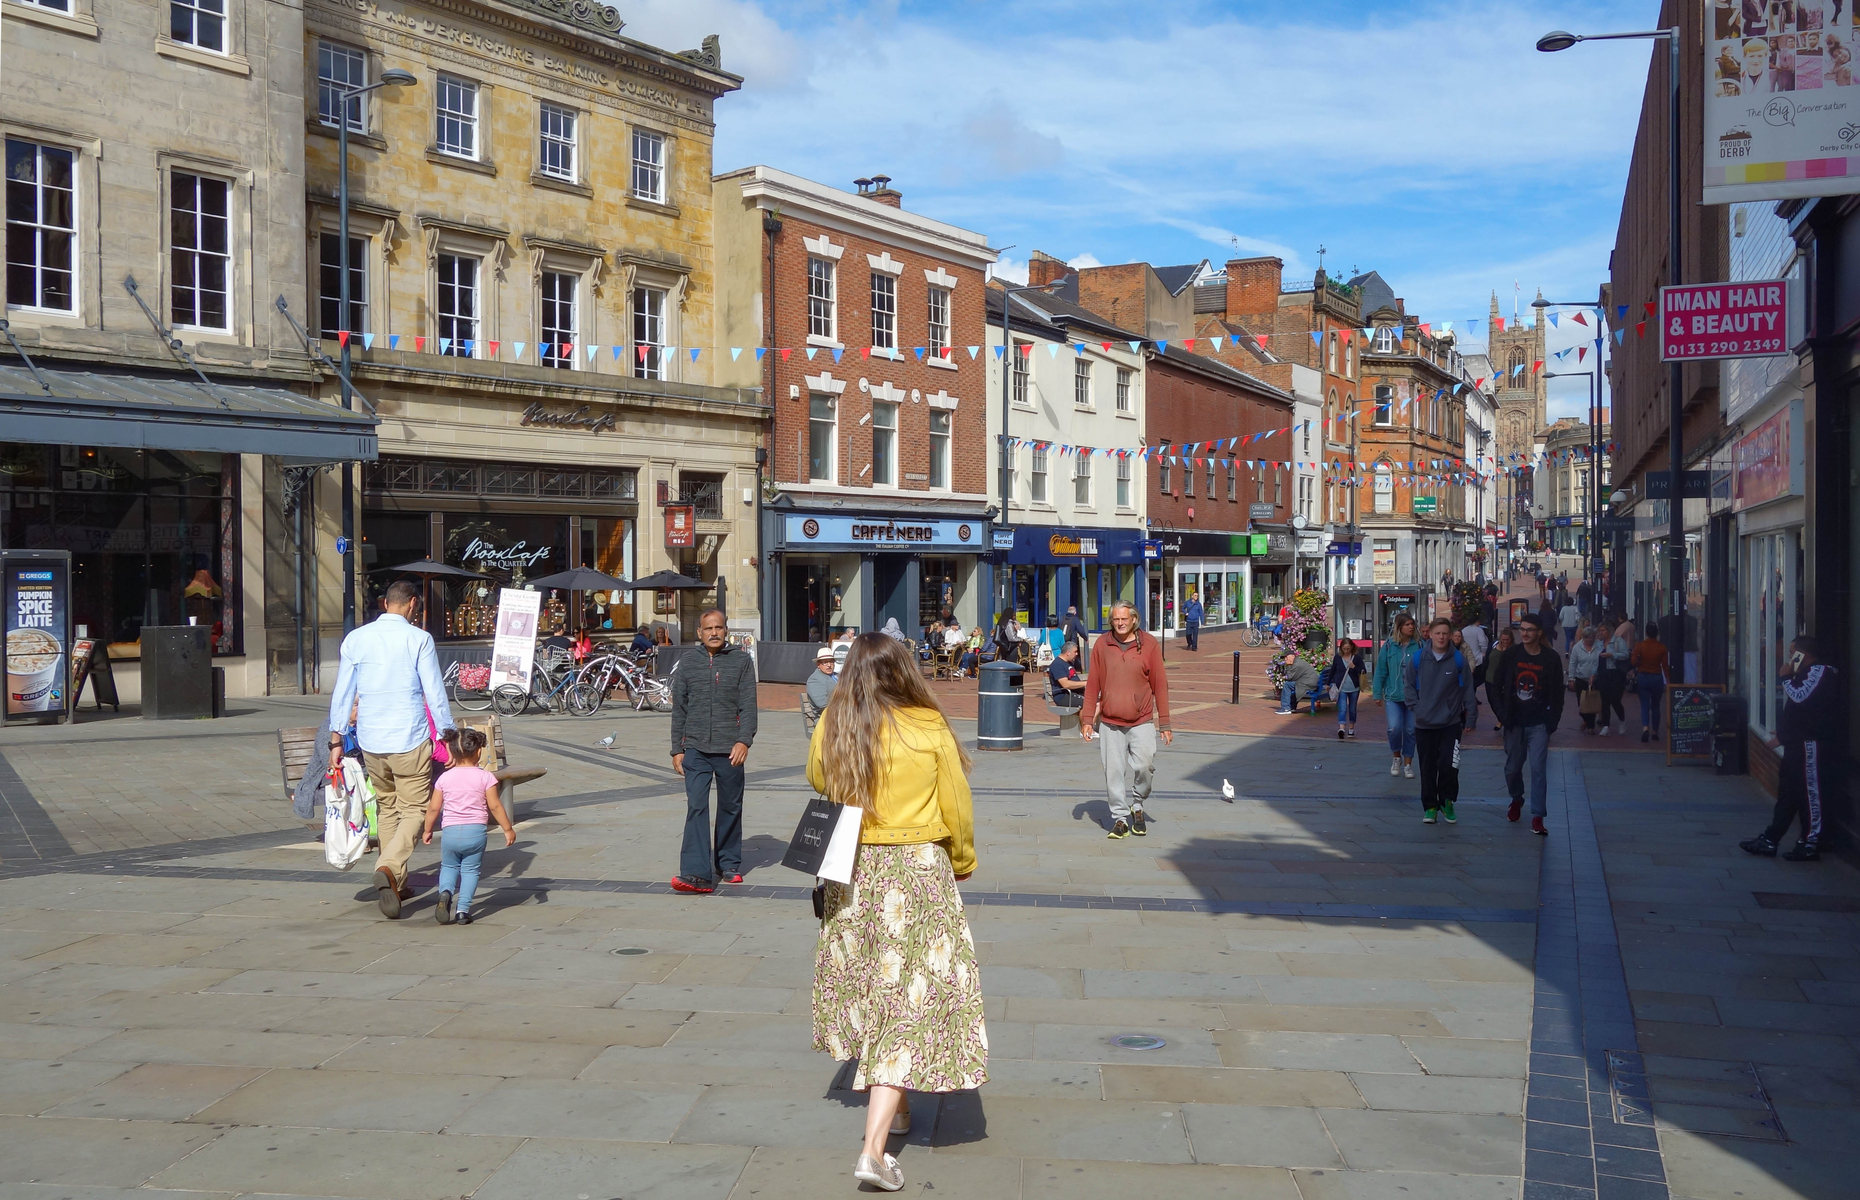 Upping sticks to Derby could help renters save for a home. Image: Michael715/Shutterstock